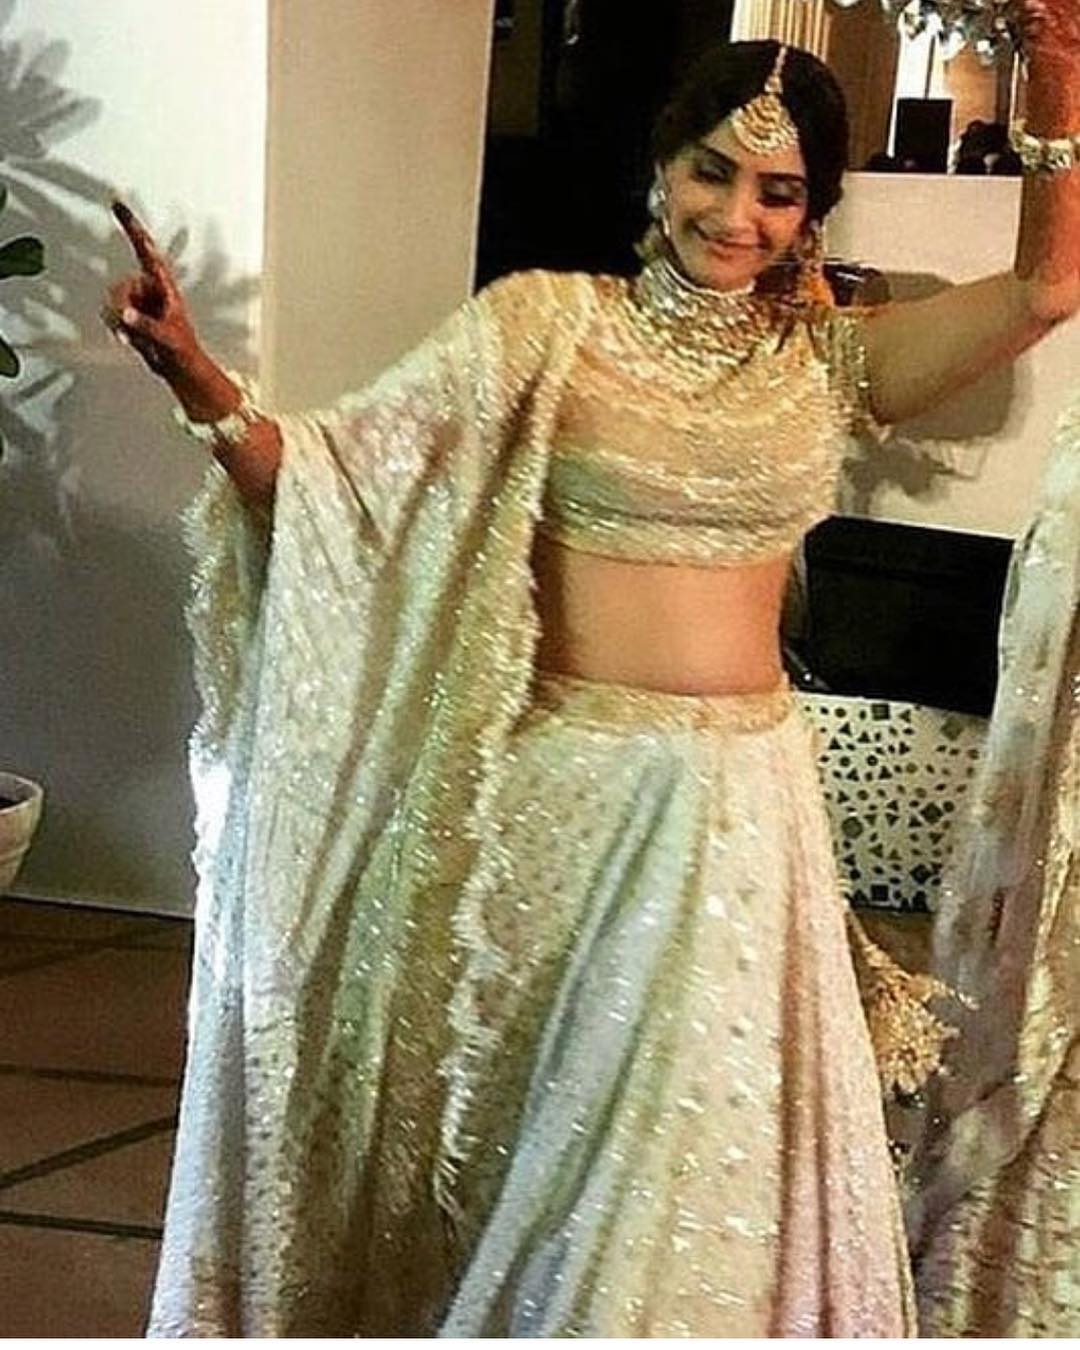 3-2 Sonam Kapoor Wedding Pics - Engagement and Complete Wedding Pictures